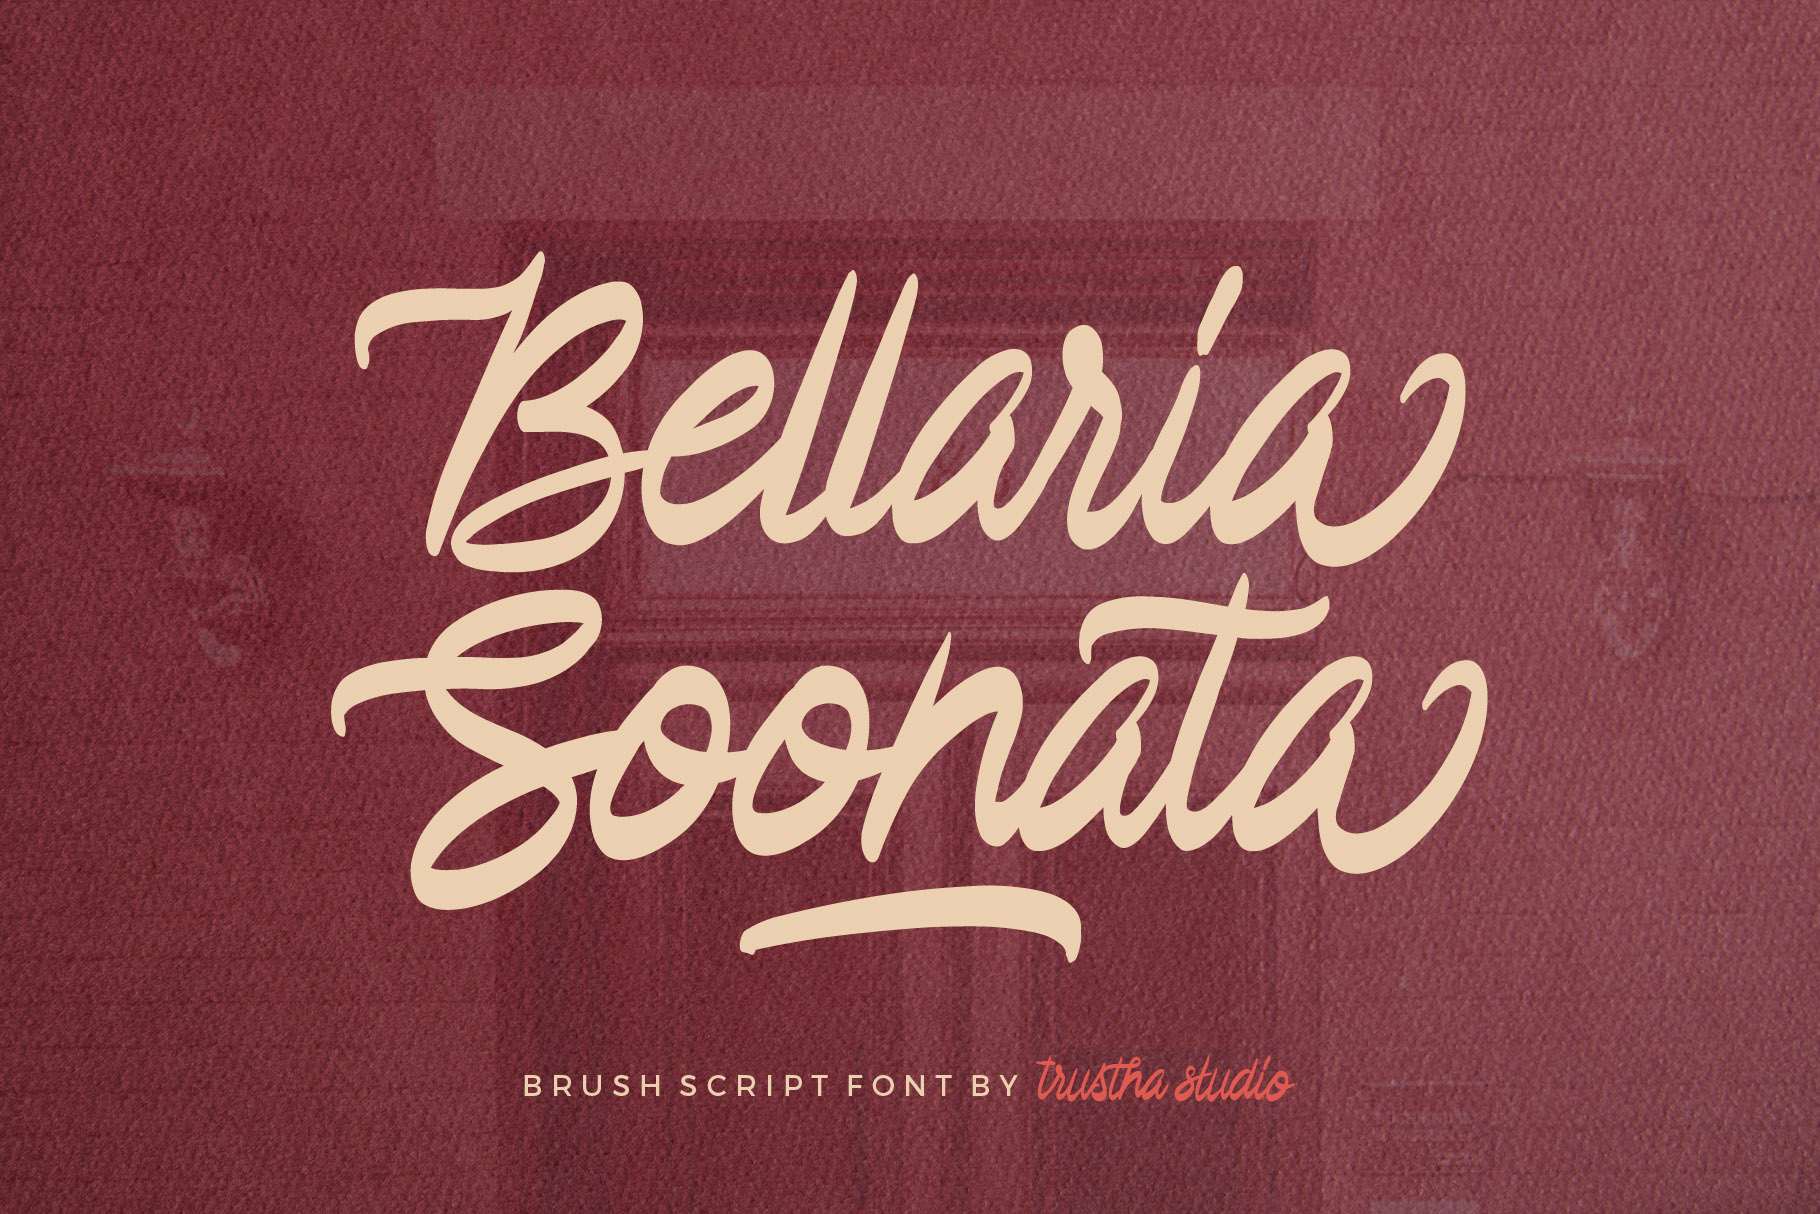 Bellaria Soonata example image 1